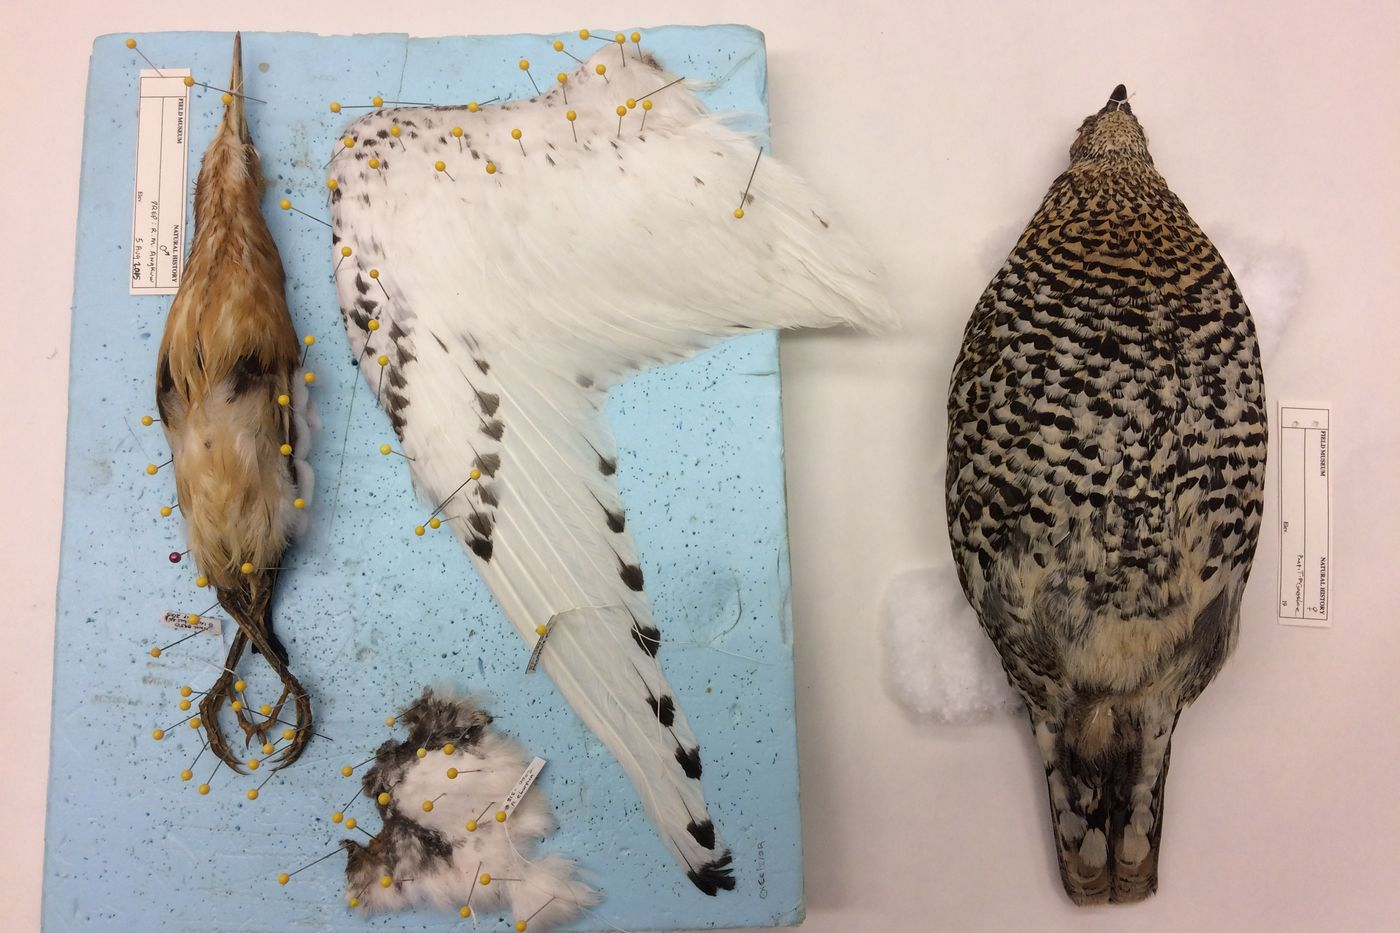 Ivory Gull and Spruce Grouse specimens